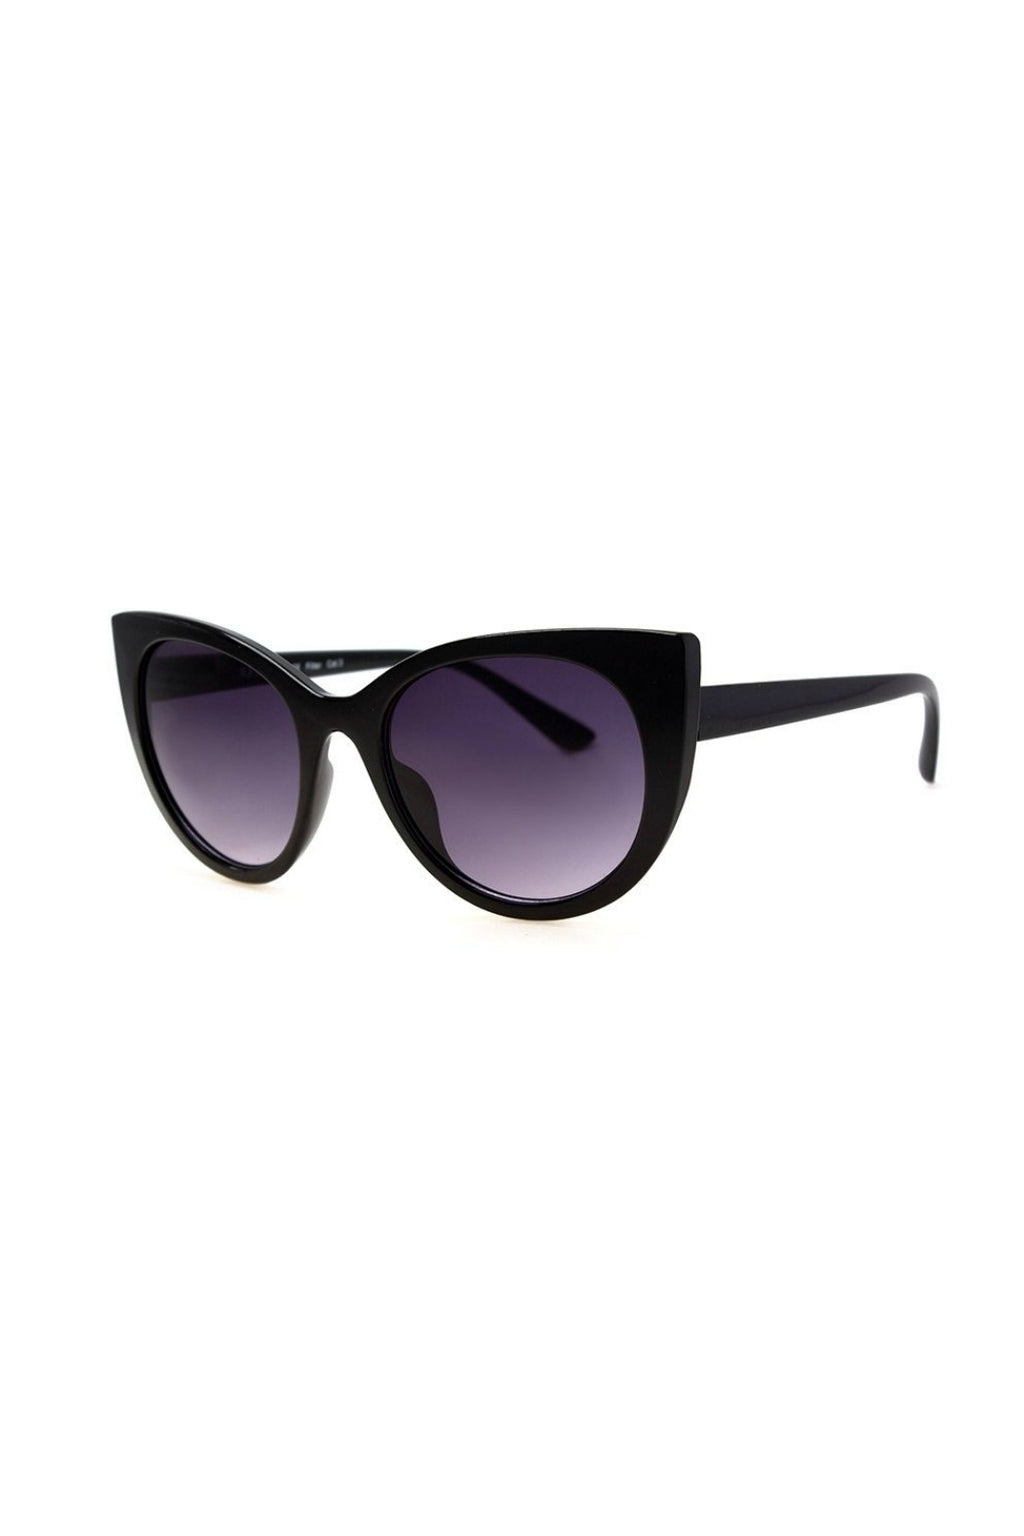 Buttercup Sunnies - Black